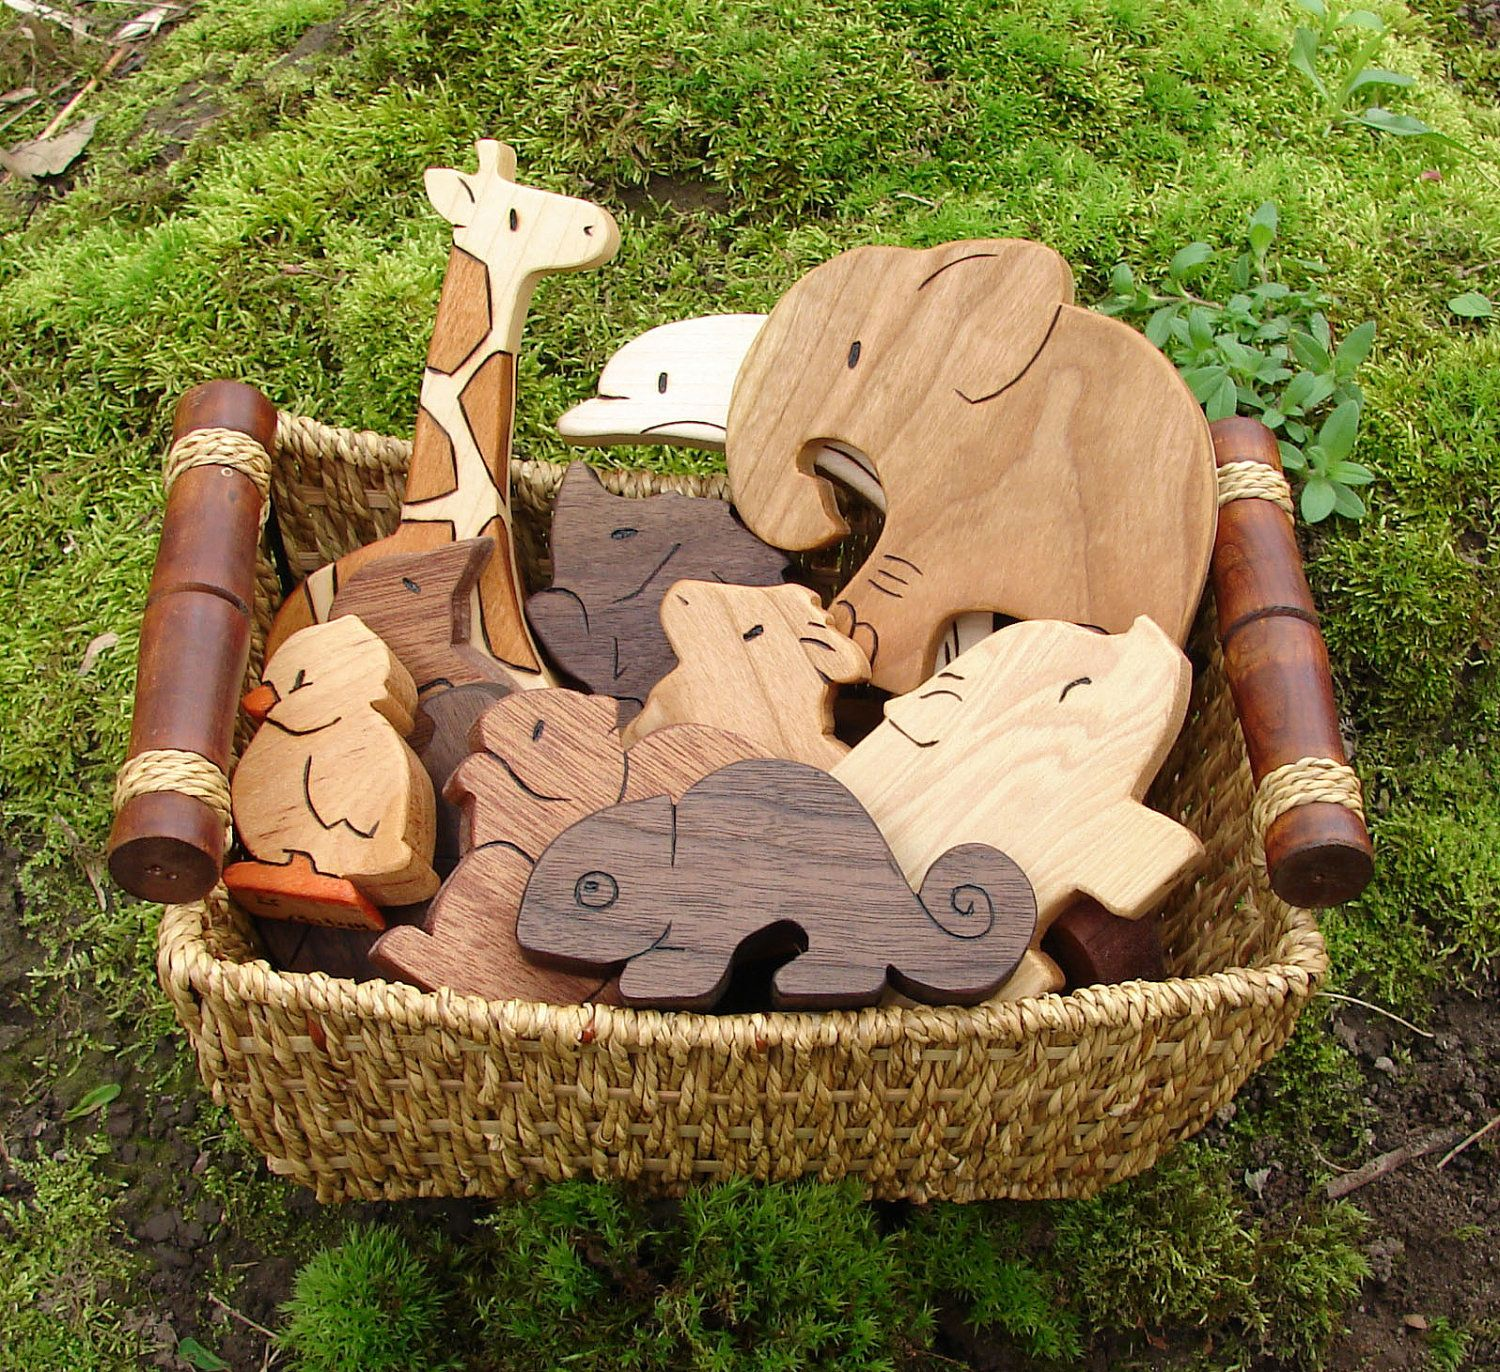 Top 25 Best Kids Toy Boxes Ideas On Pinterest: The 25+ Best Wooden Animals Ideas On Pinterest